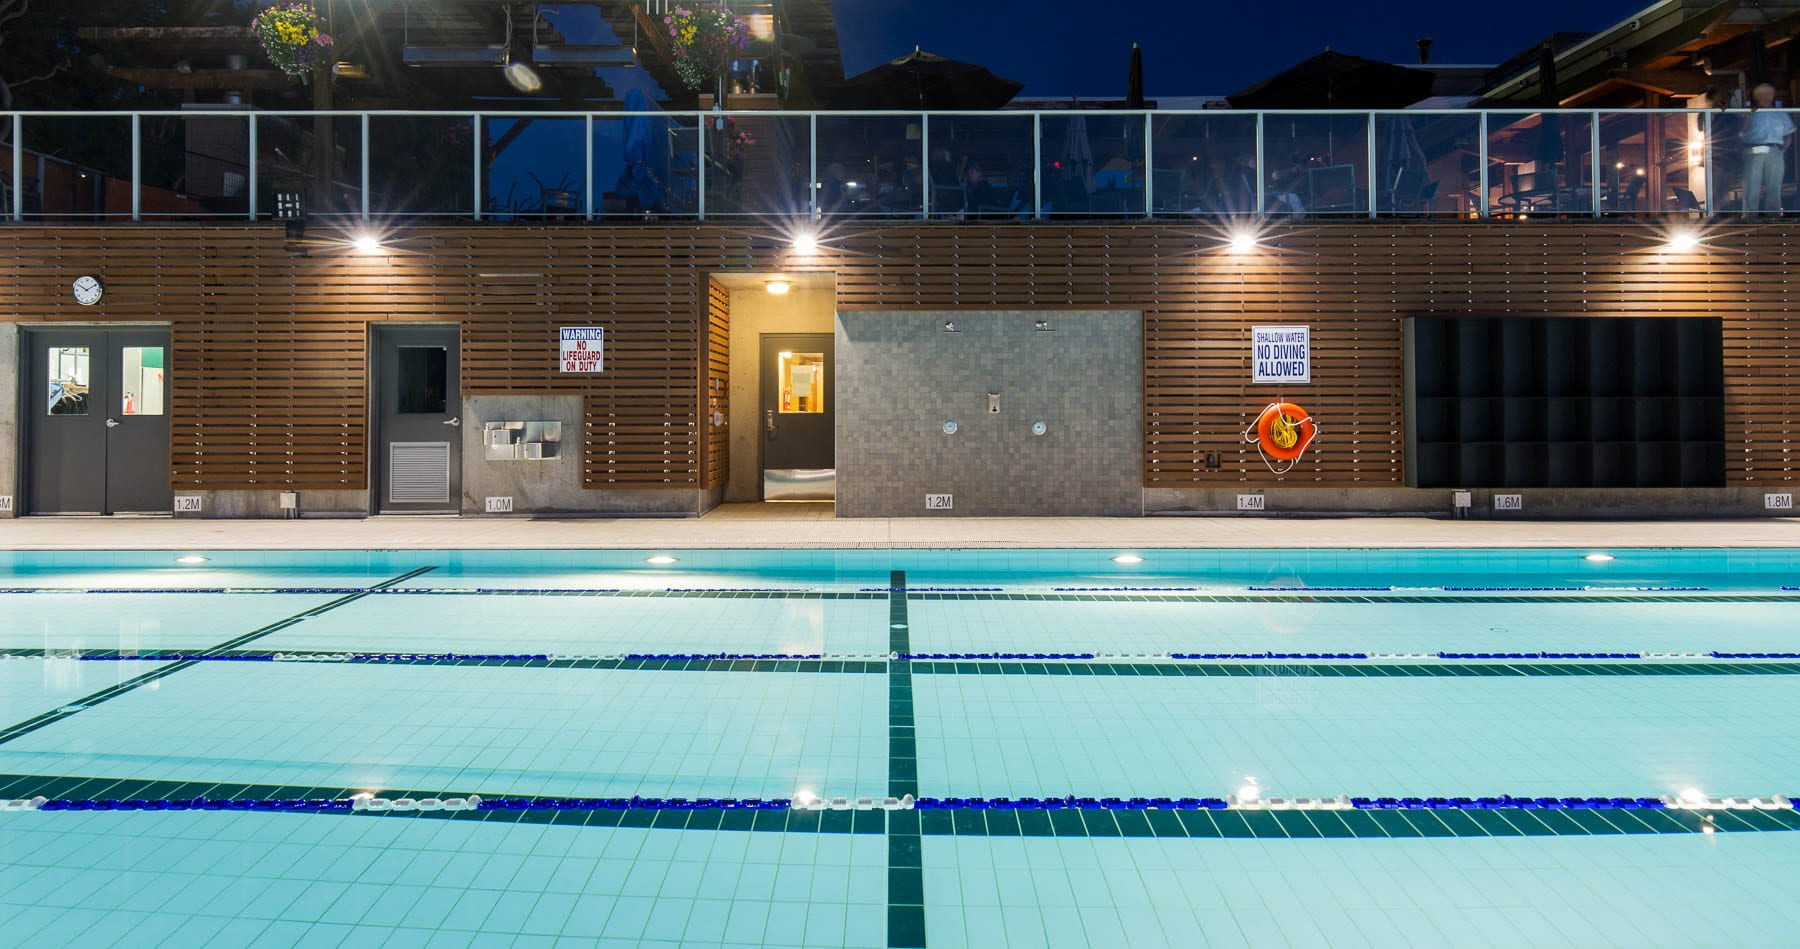 Renovated Jericho tennis club outdoor swimming pool with in-pool lighting